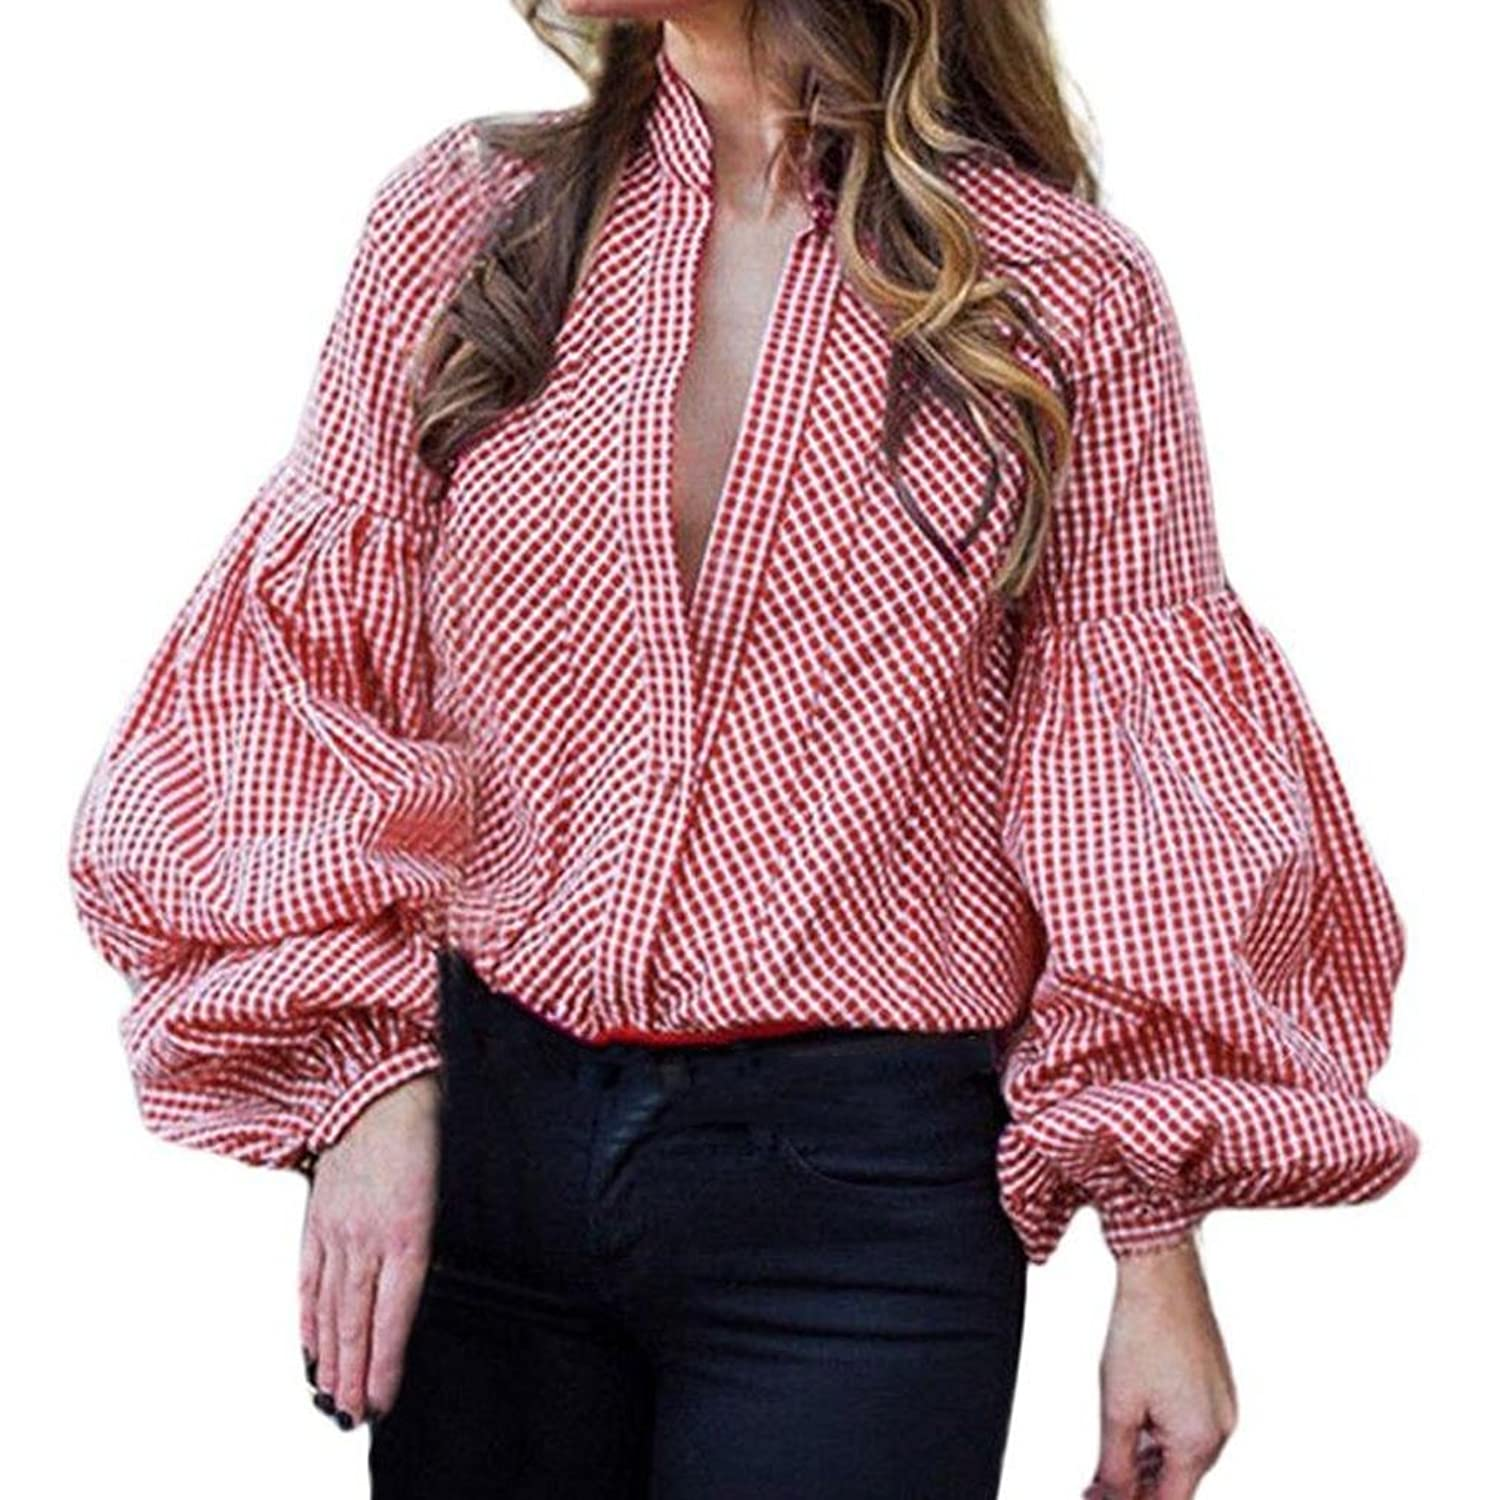 81f6eb99414 ❊Material Polyester♥♥Women s teen long sleeve ruffled waist button- down  peplum shirt women s sexy fitted plaid shirt 3 4 sleeves blouses v neck tie  ...